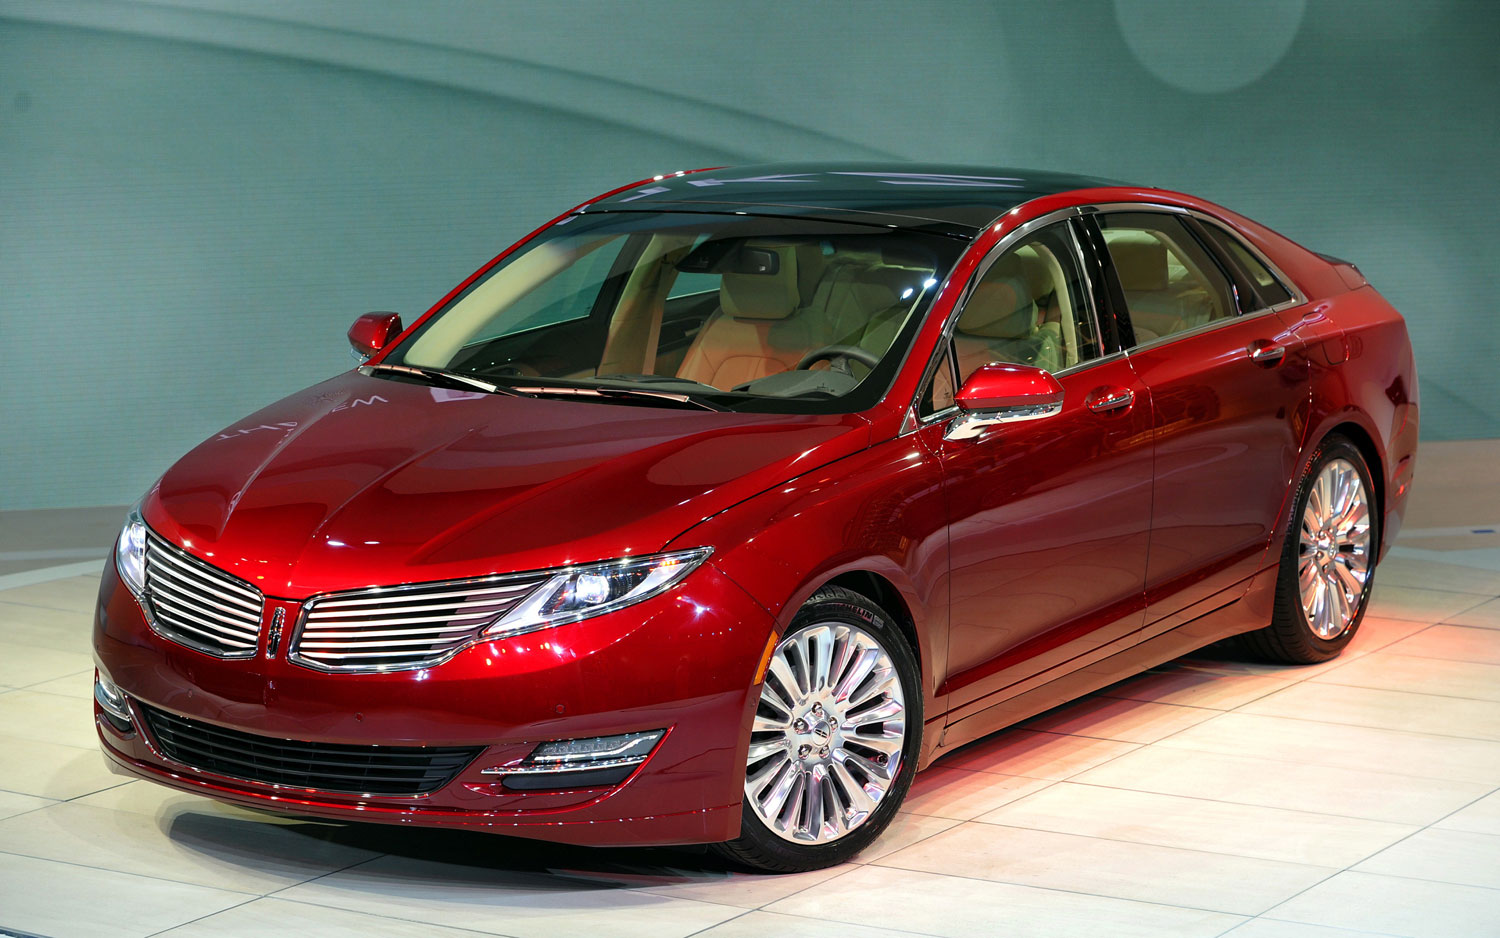 2013 Lincoln Mkz #11